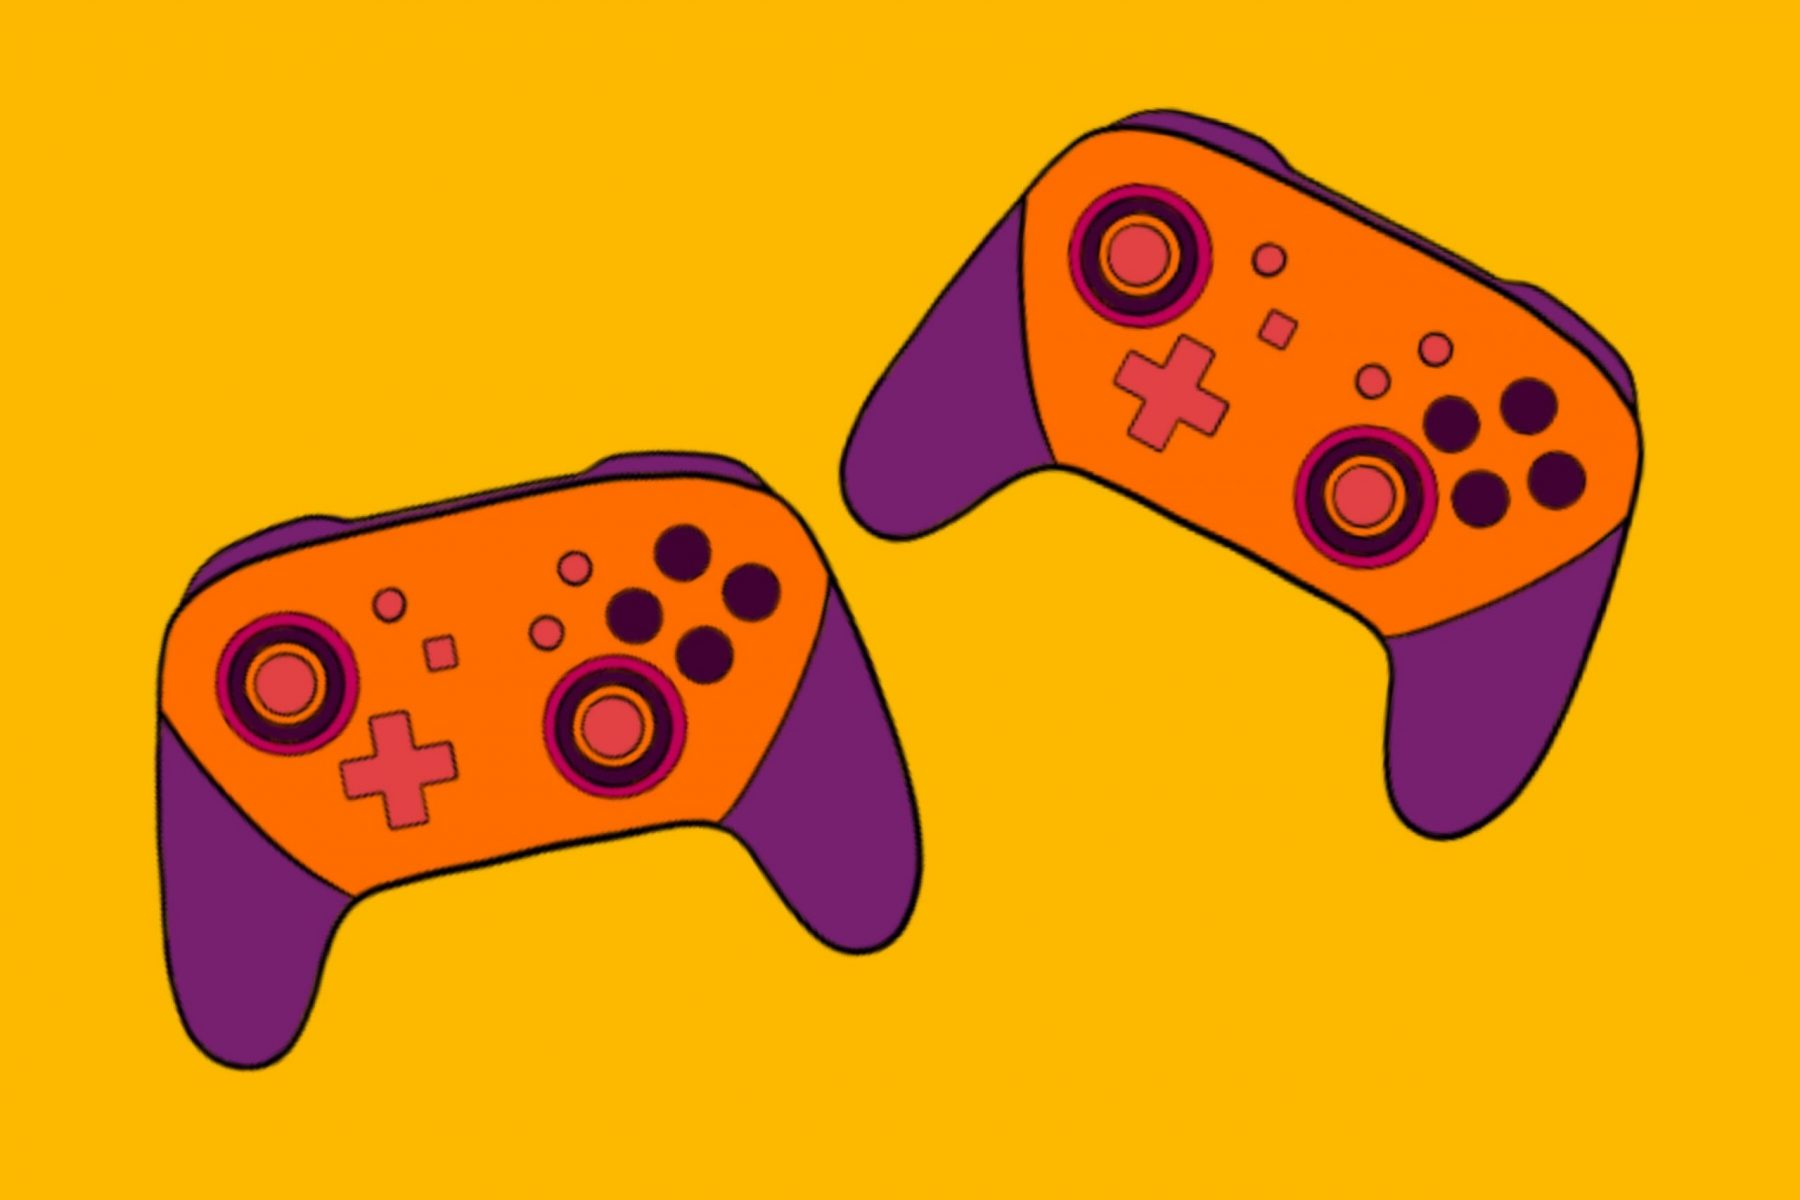 Two Xbox One controllers representing couch co-op multiplayer